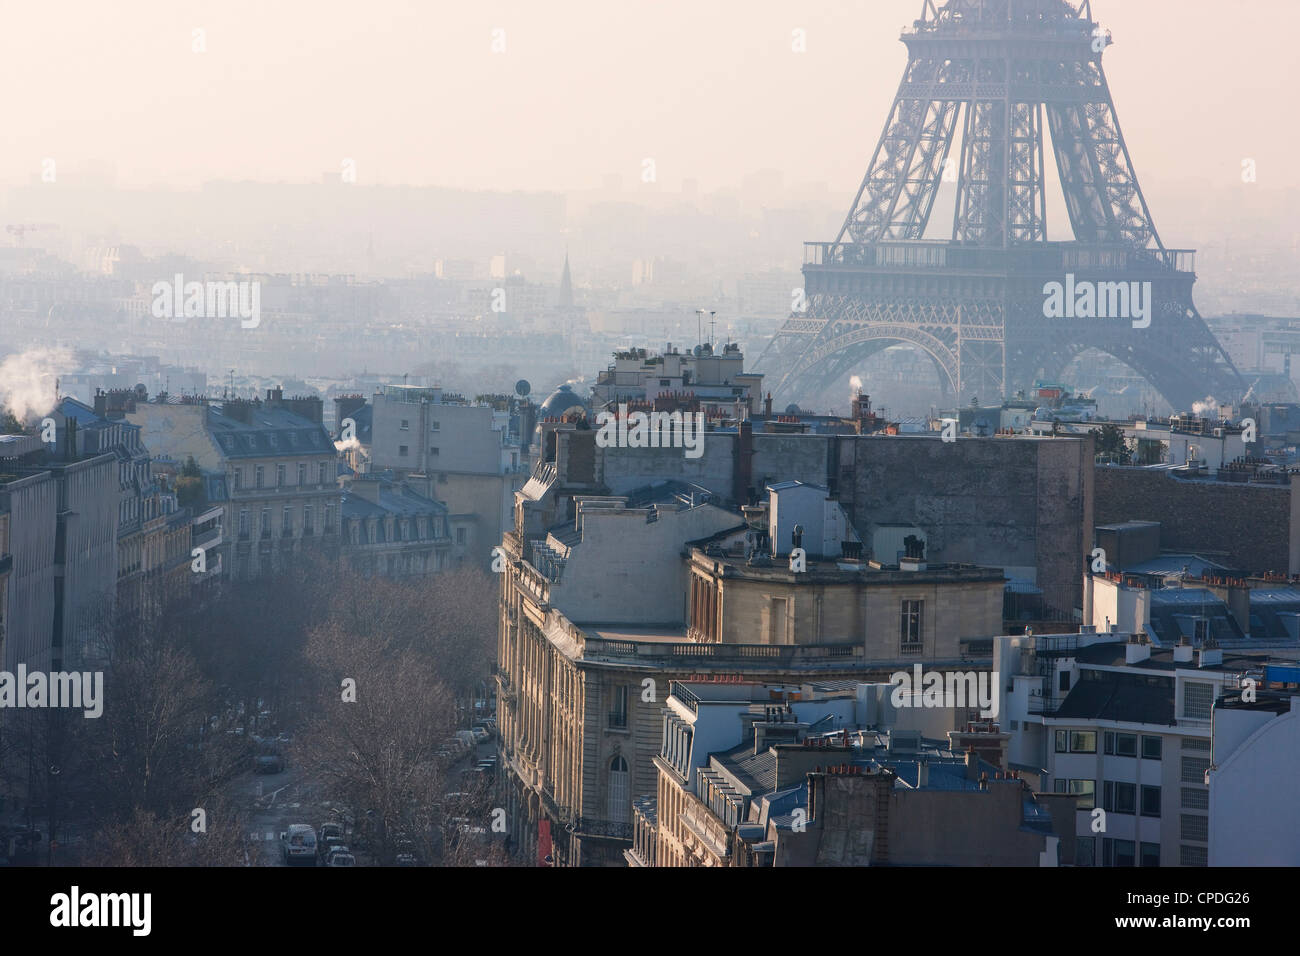 The Eiffel Tower from the Arc de Triomphe, Paris, France, Europe - Stock Image